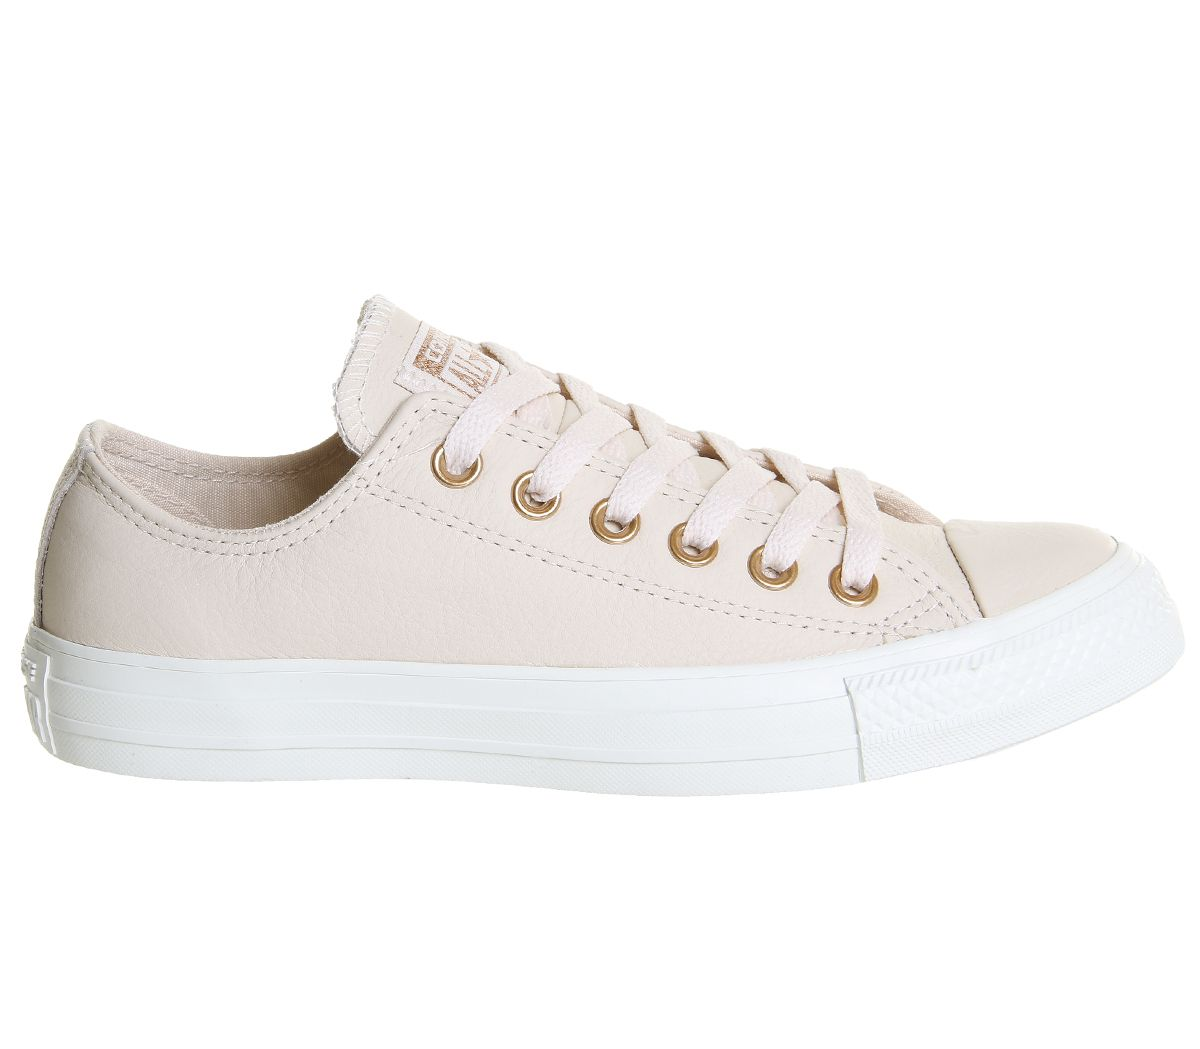 28548905f9 Converse All Star Low Leather Egret Pastel Rose Tan Blush Gold ...